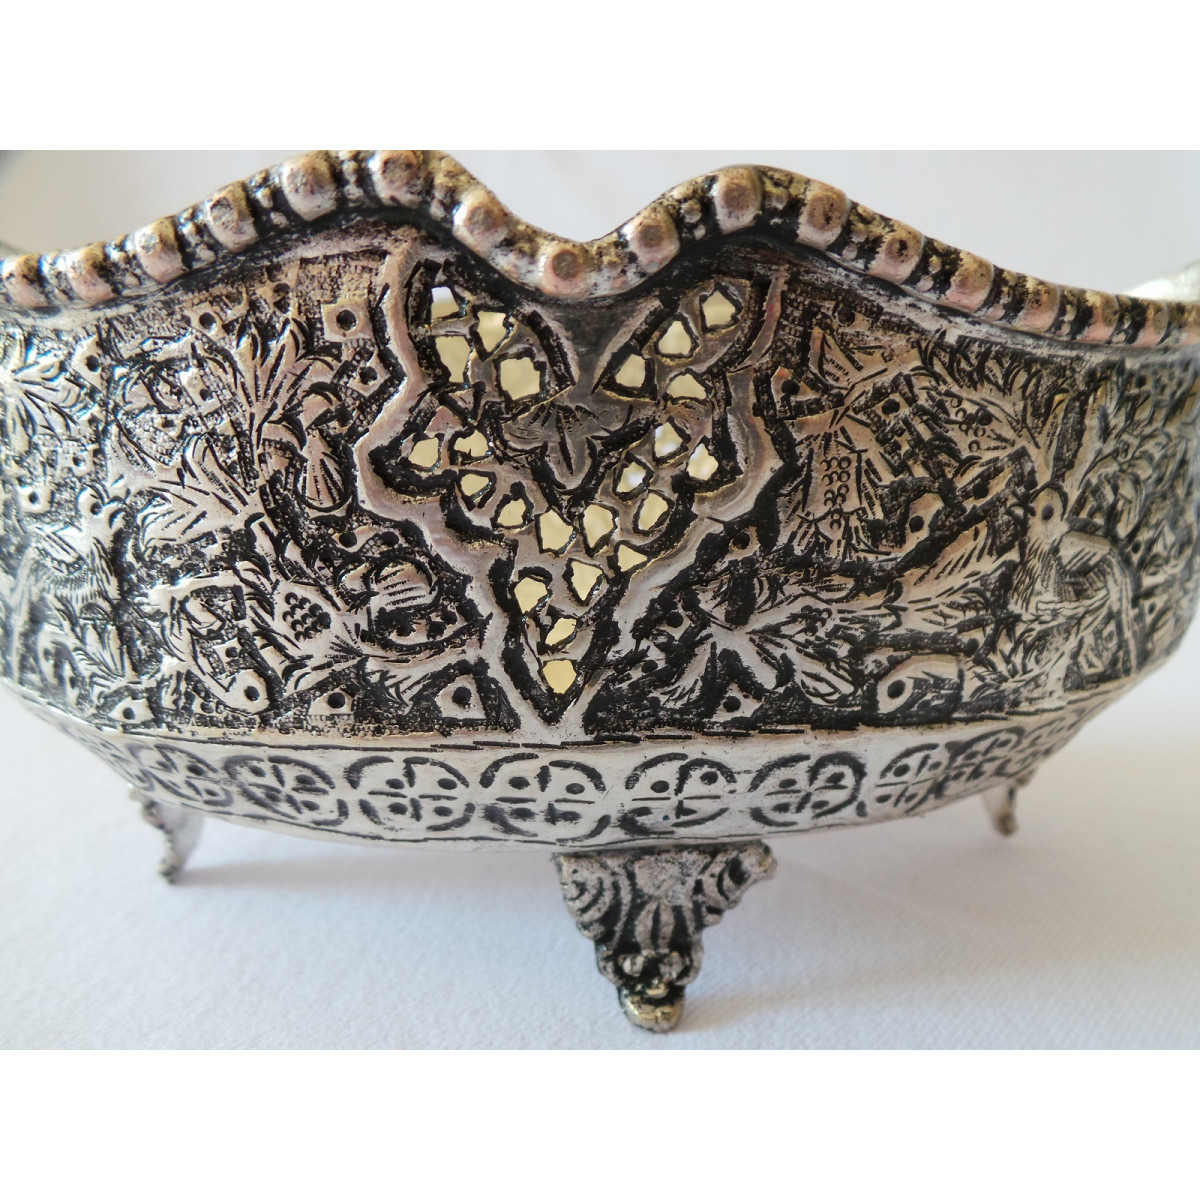 Hand Engraving on Sliver Plated Candy/Nut Oval Bowl - HG2002-Persian Handicrafts